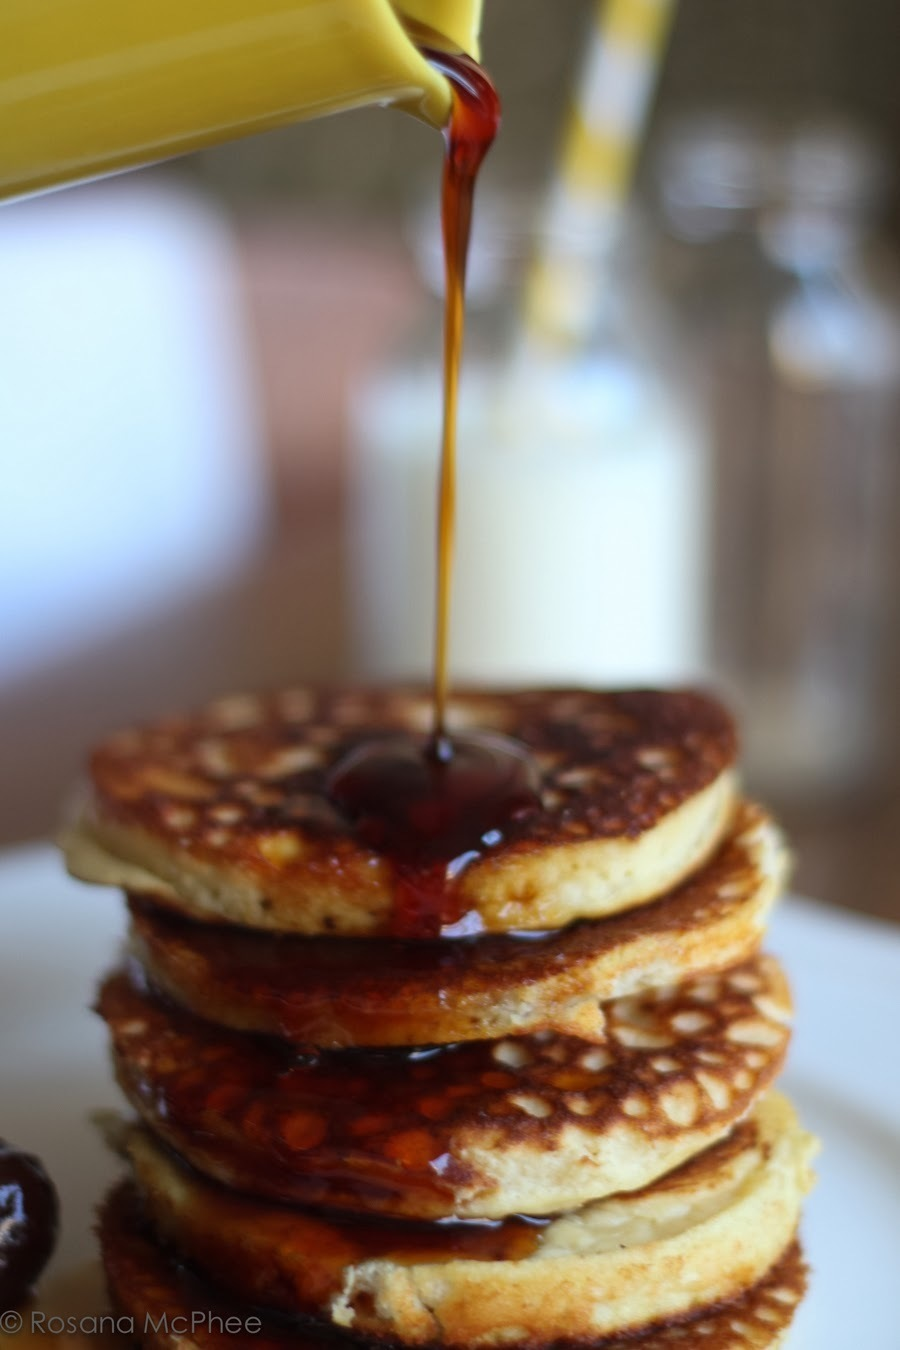 coconut flour pancake with prune syrup recipe (gluten & diary free)